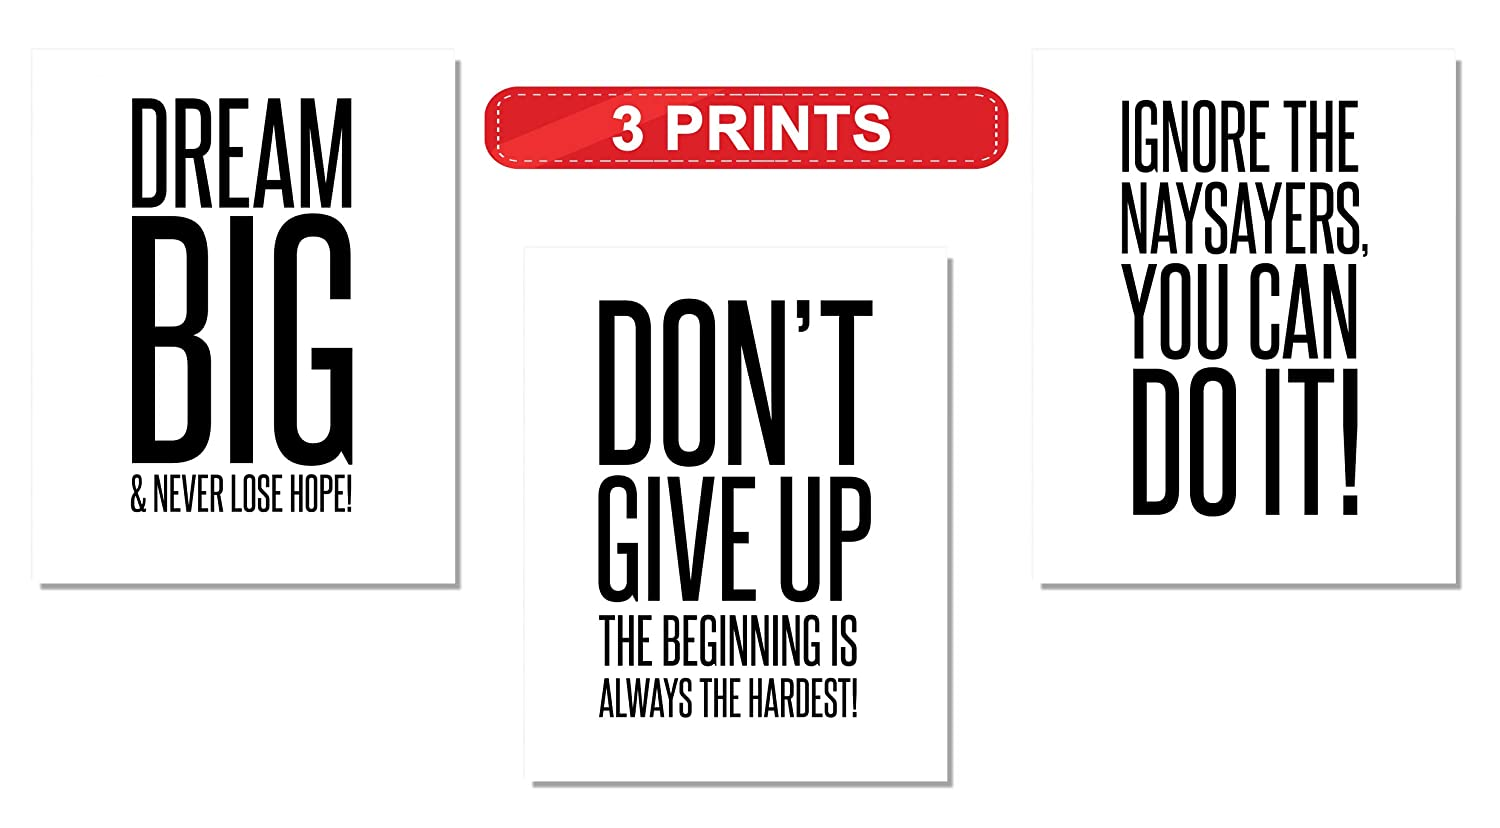 Inspirational Home Wall Art Decor (3-Set) | 8x10 Unframed Prints | Great White & Black Motivational Famous Quotes Poster Gifts for Teens, Entrepreneurs, Offices, Classrooms, Gyms, Dorms (Dream Big)